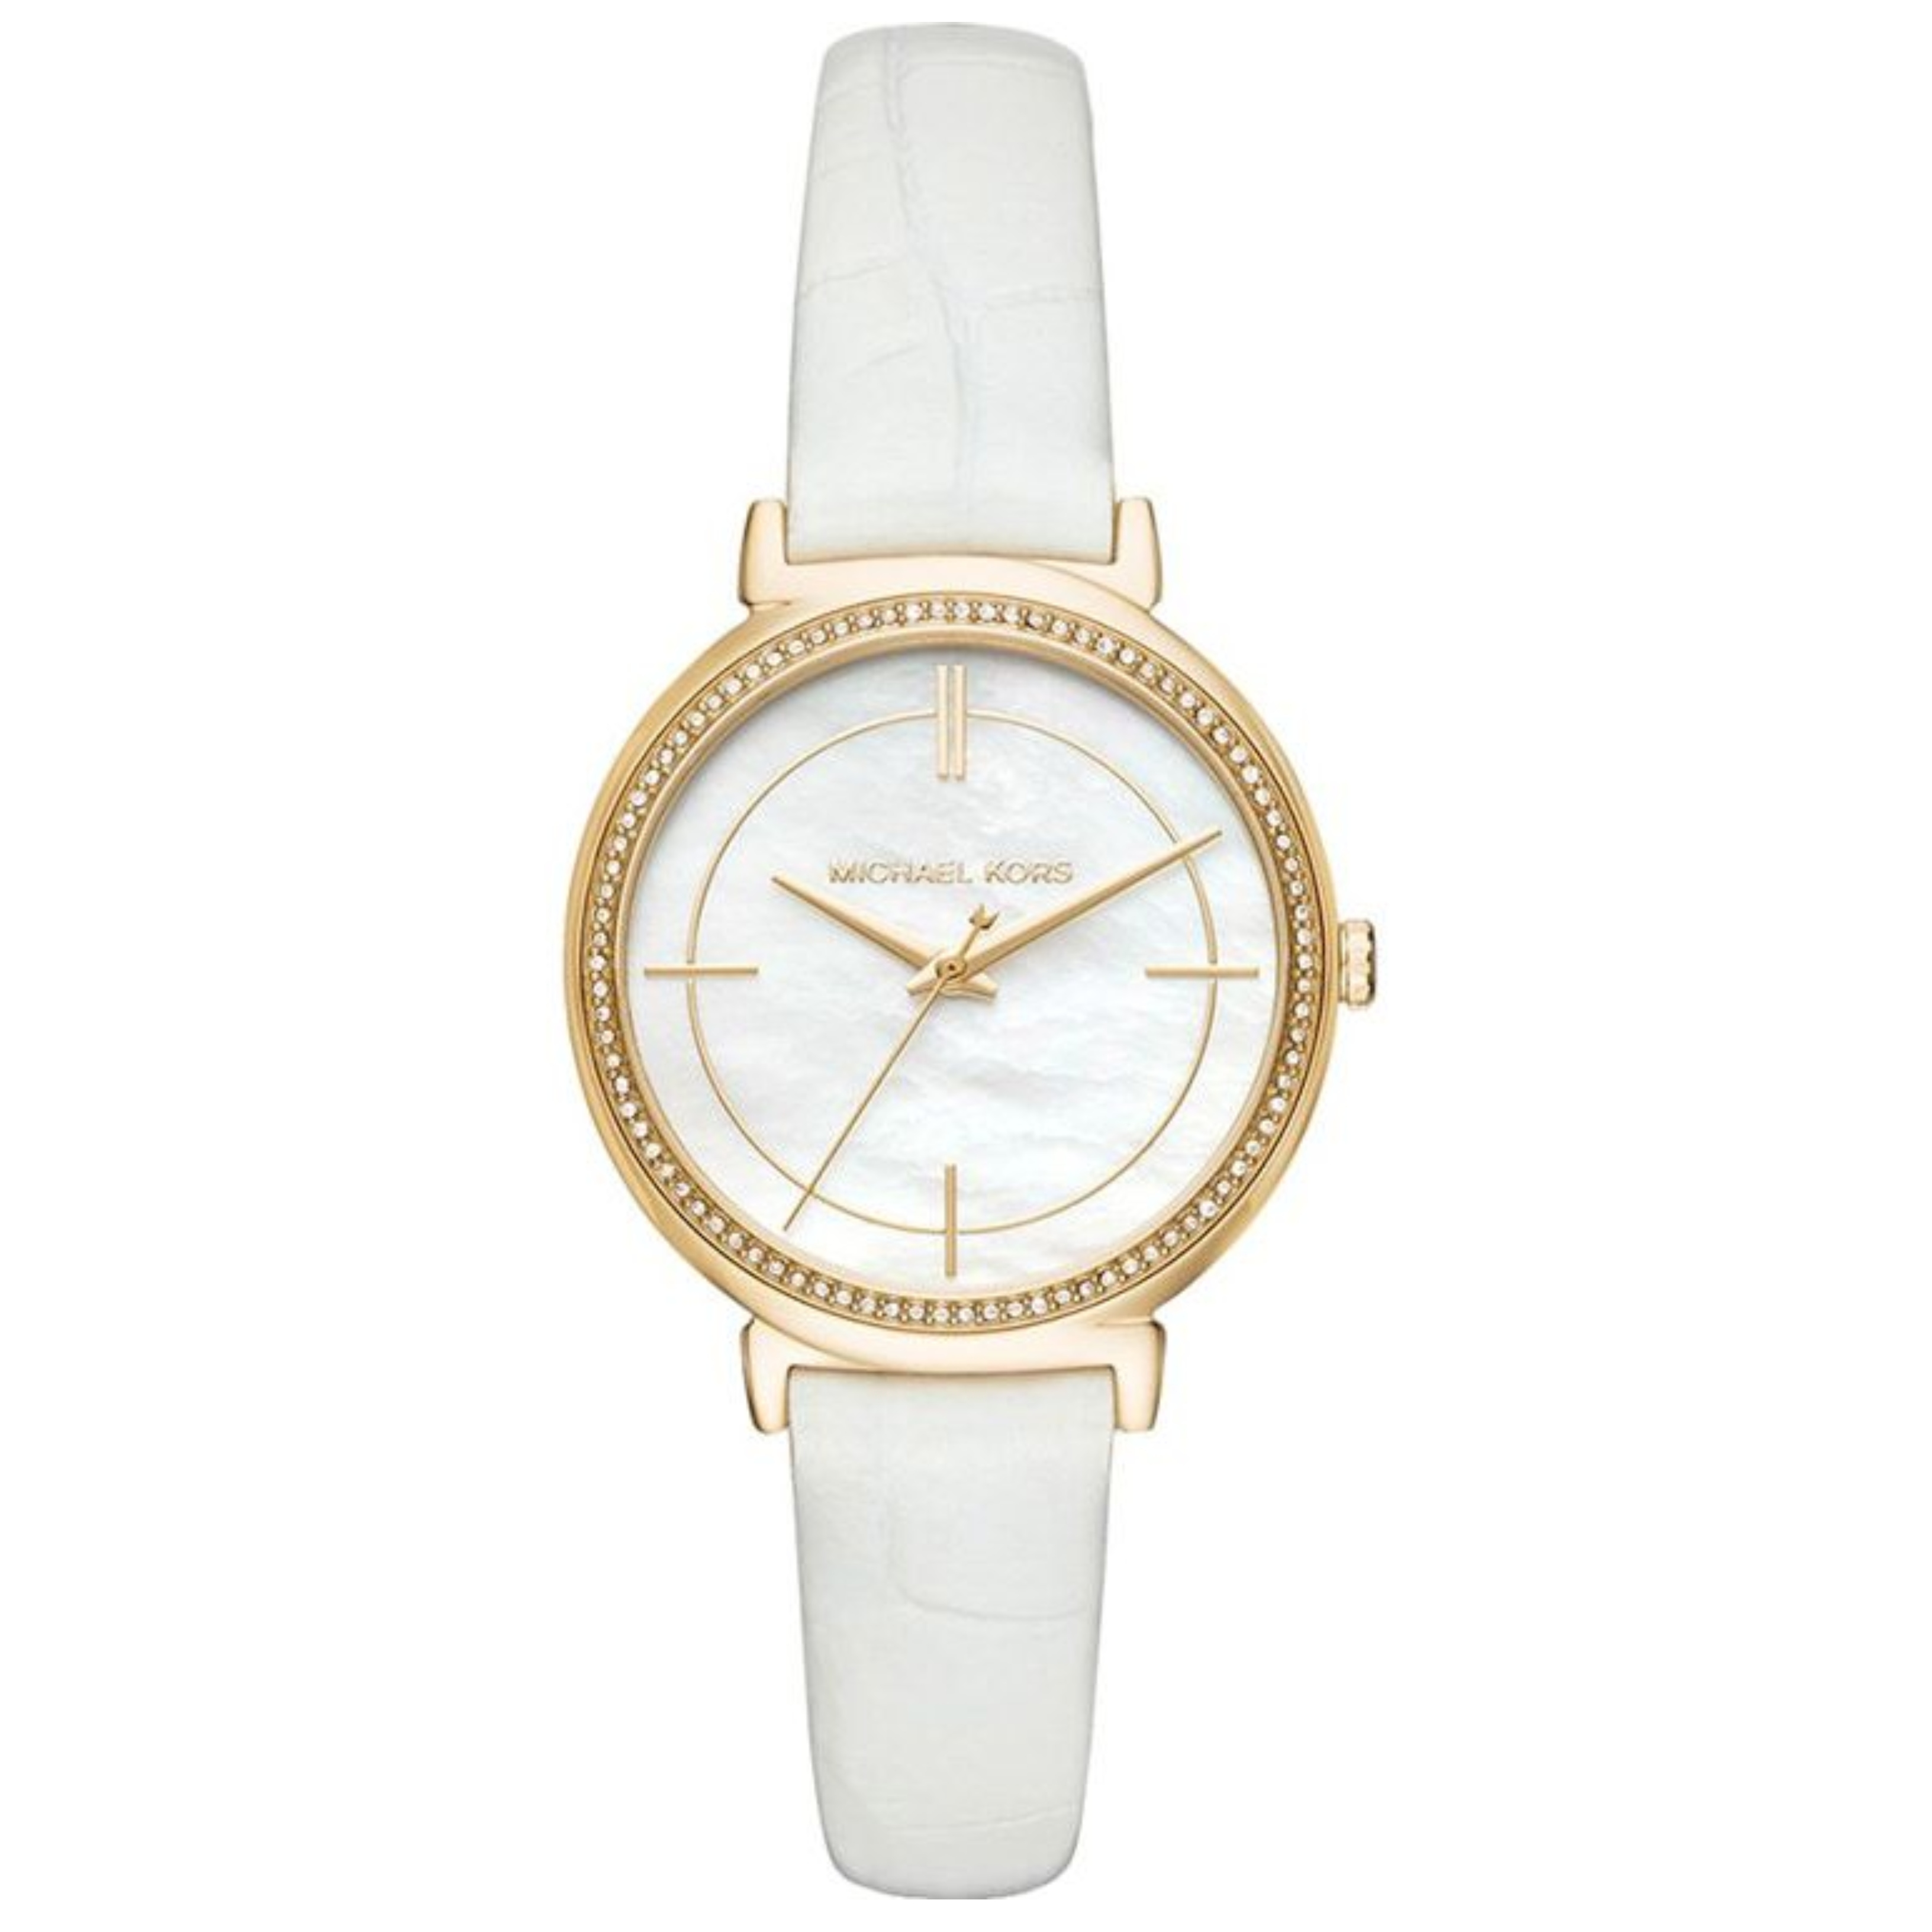 Michael Kors Cinthia White Mother Of Pearl Dial Leather Band Ladies Watch MK2662